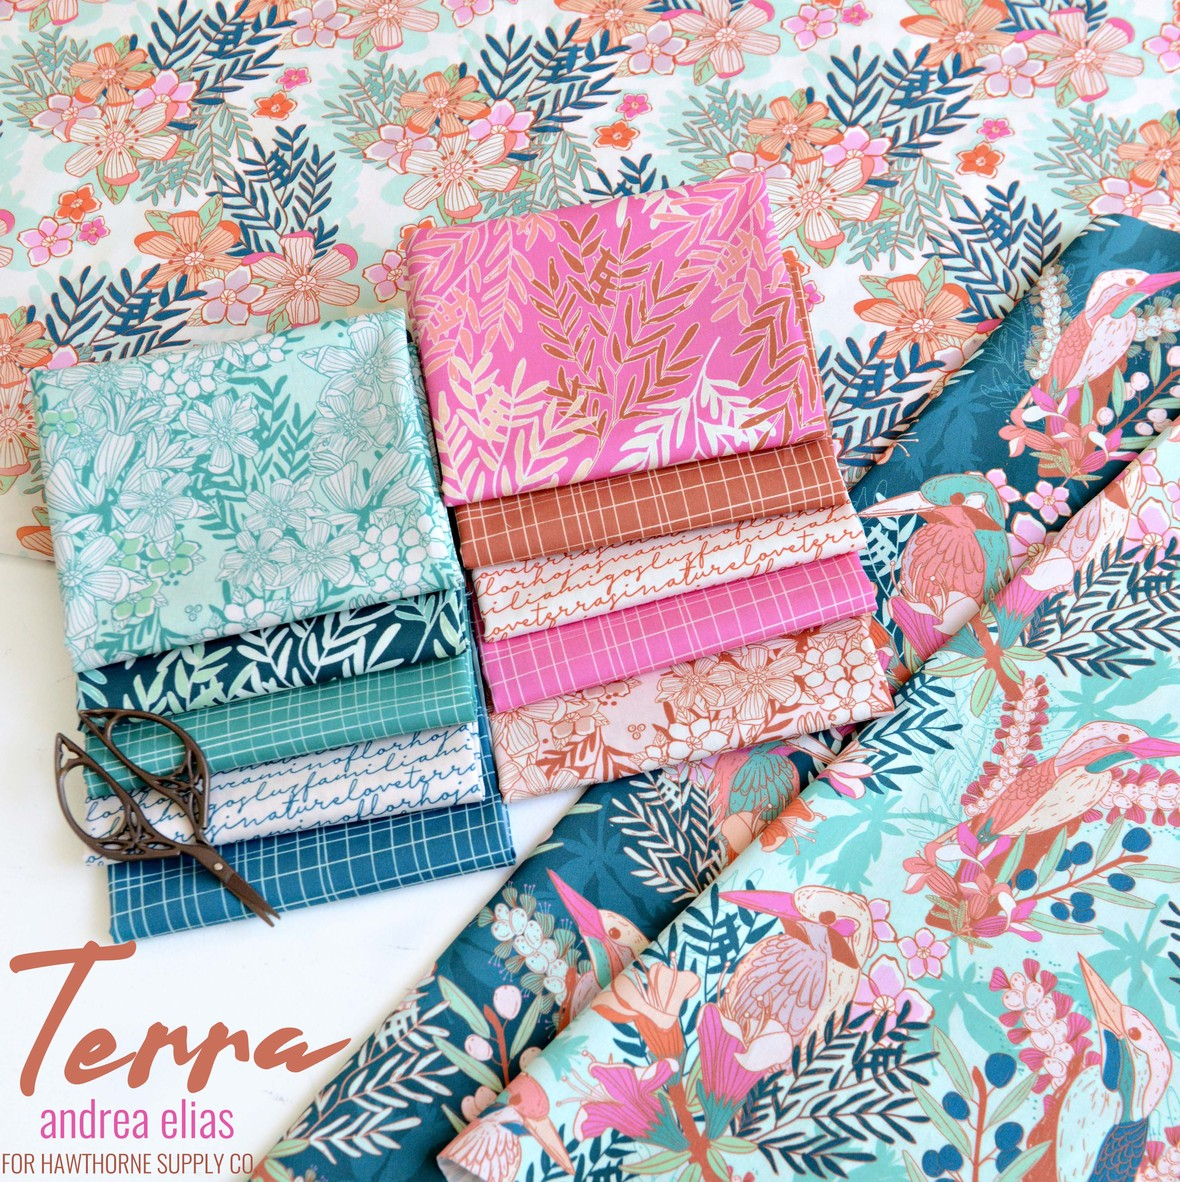 Terra Fabric from Andrea Elias for Hawthorne Supply Co.